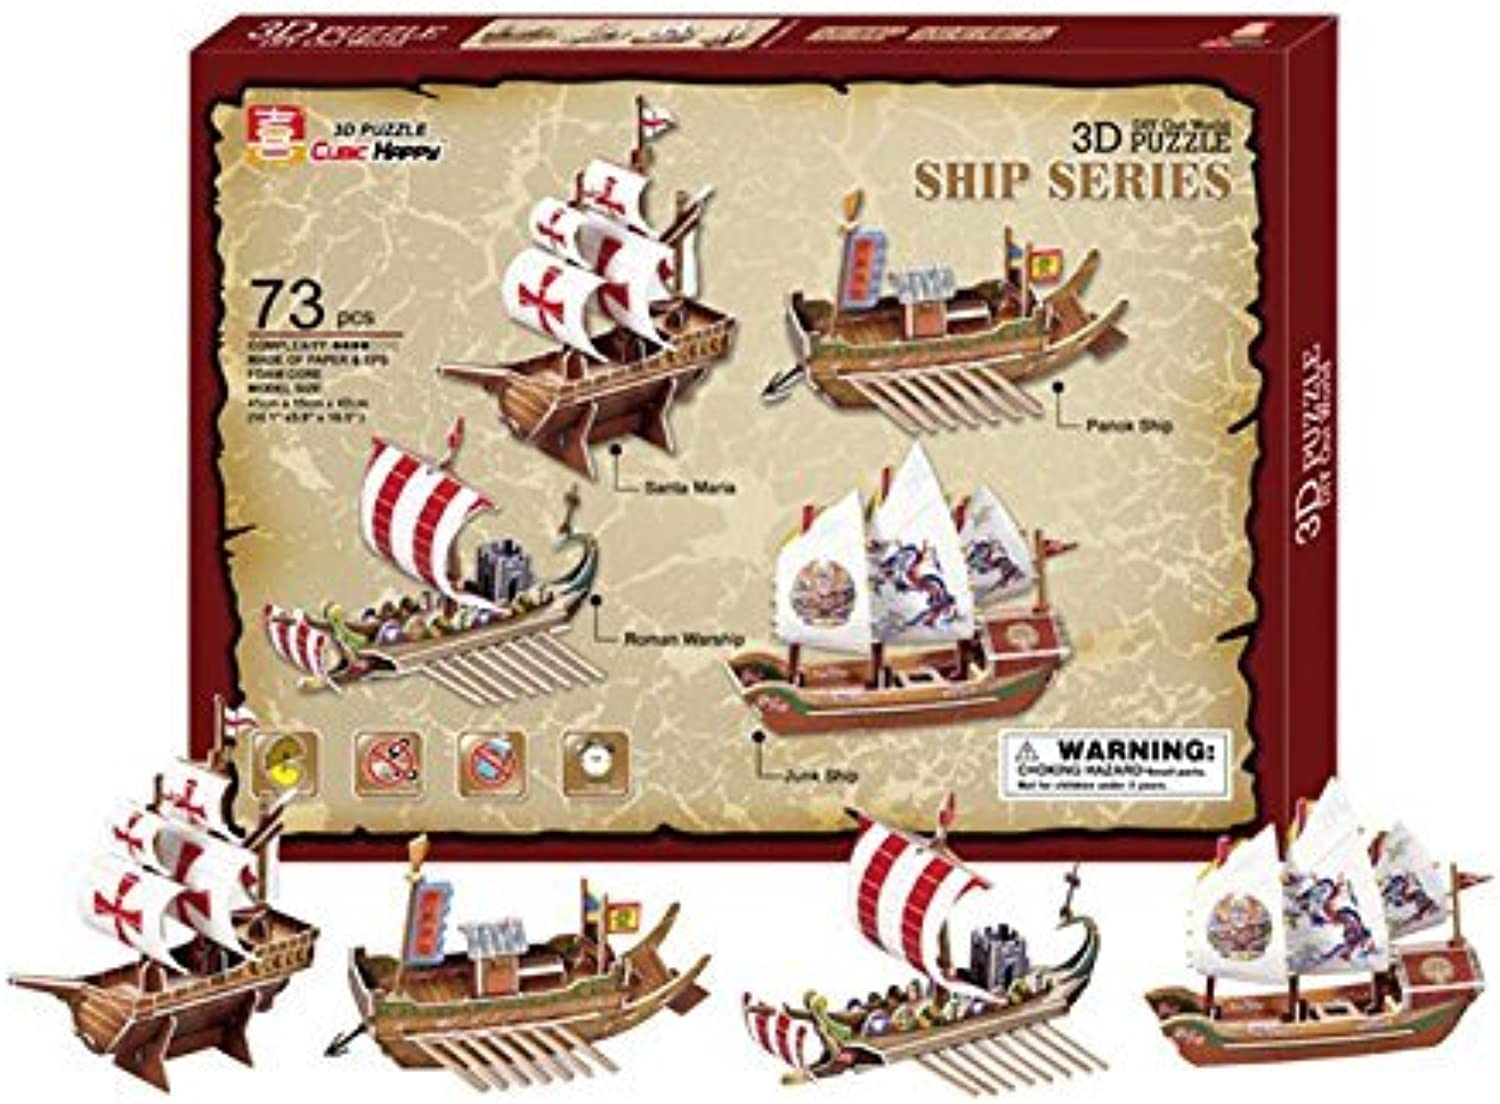 3D Ships by small foot company